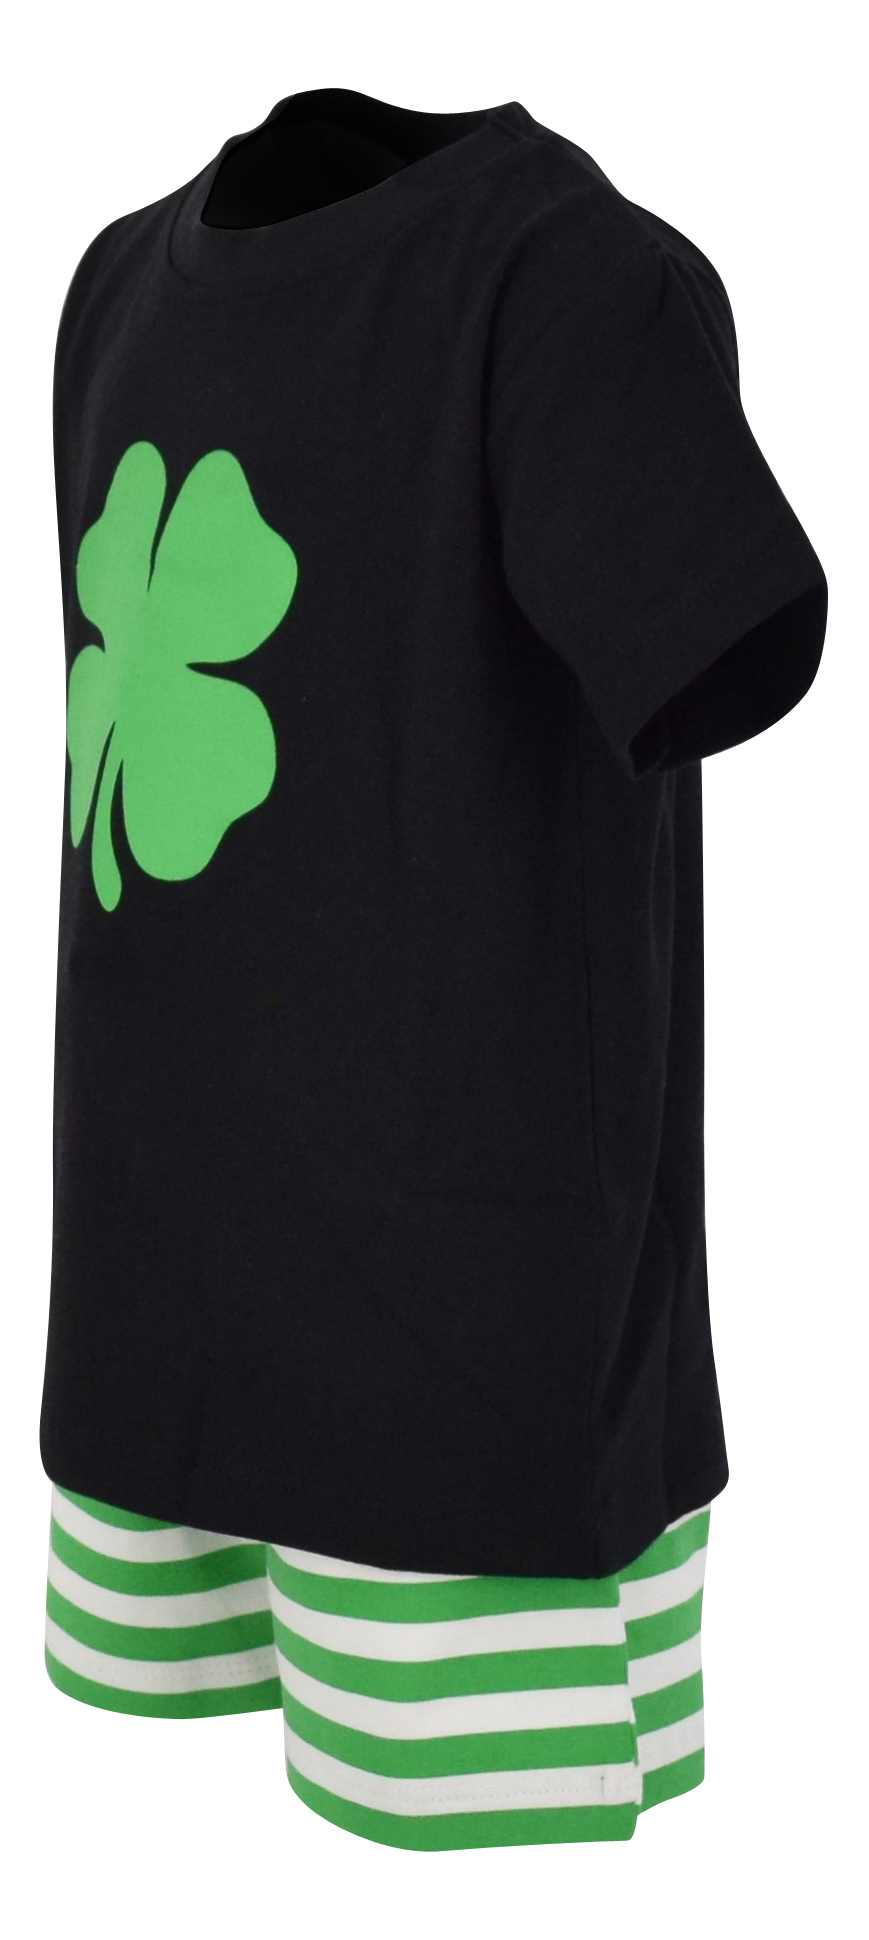 Boys-2-Piece-ST-Patricks-Day-Clover-Outfit-2t-3t-4t-5-6-7-8-Toddler-Kids-Clothes thumbnail 14